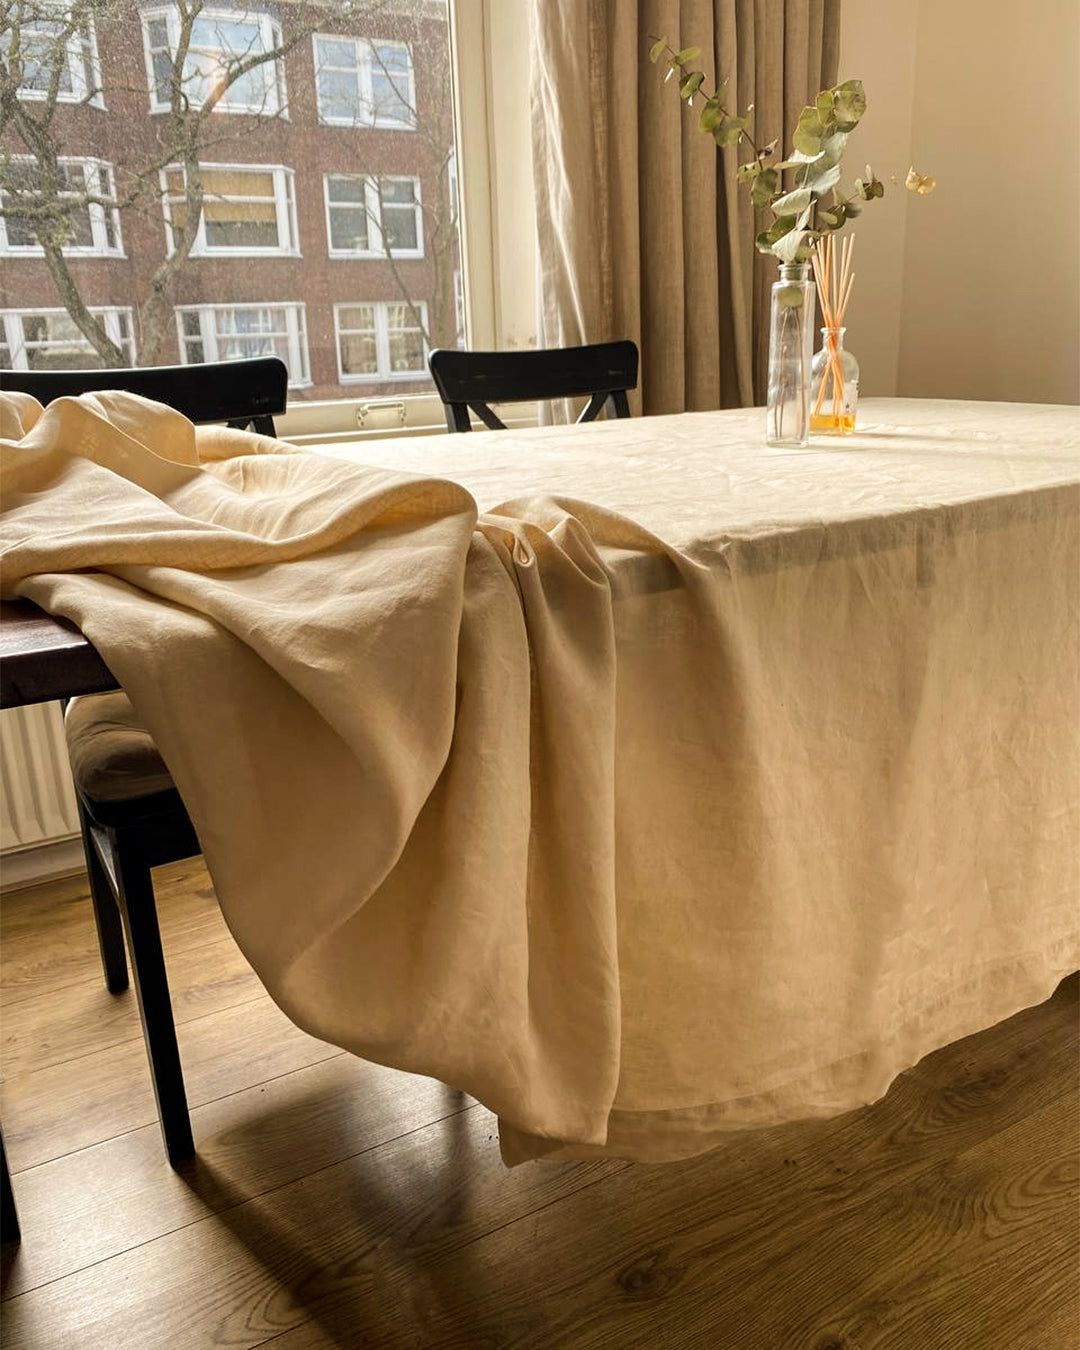 Tablecloth from soft linen in beige